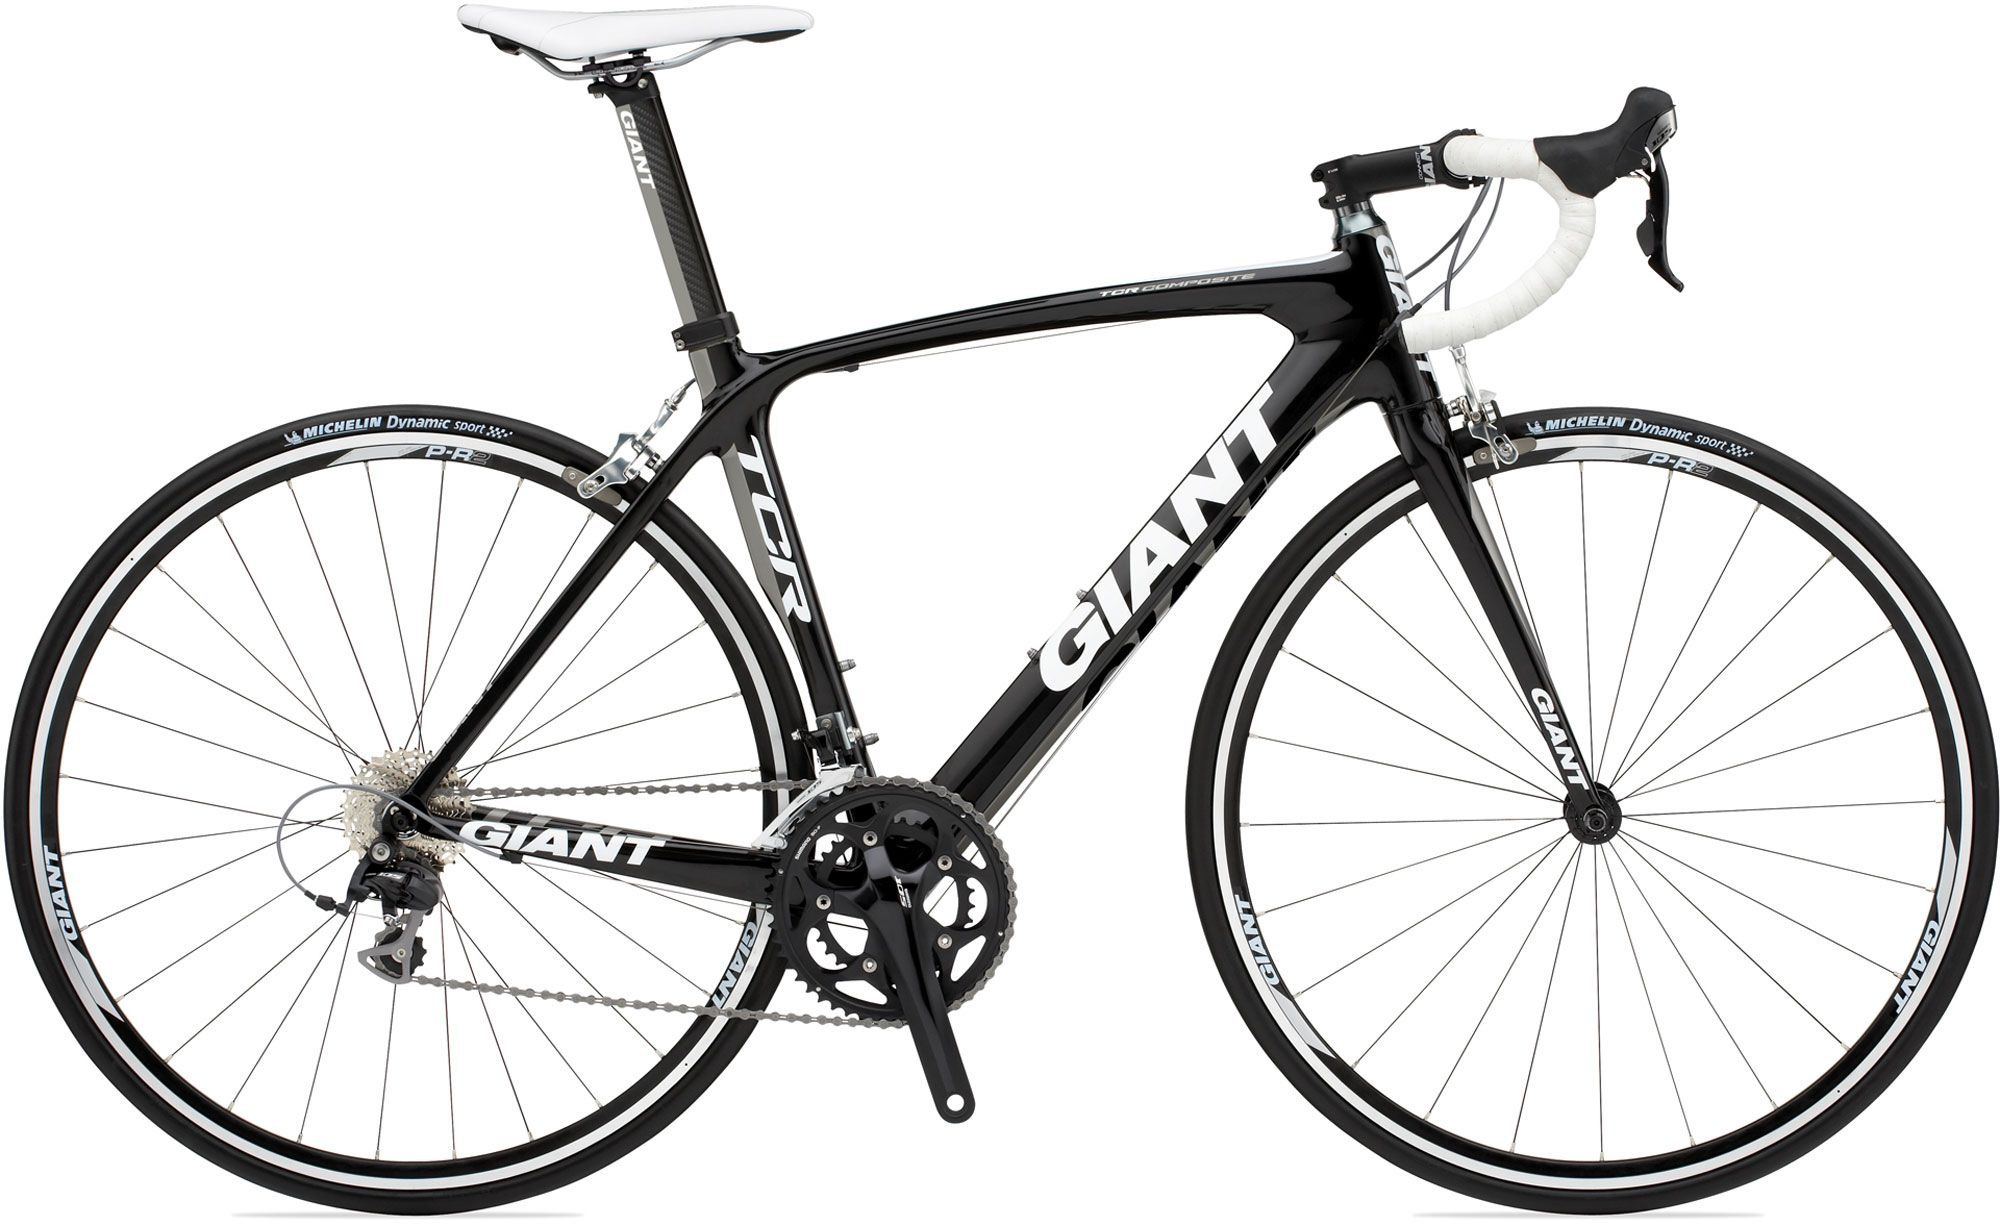 giant tcr composite 1 road bike 2011 review